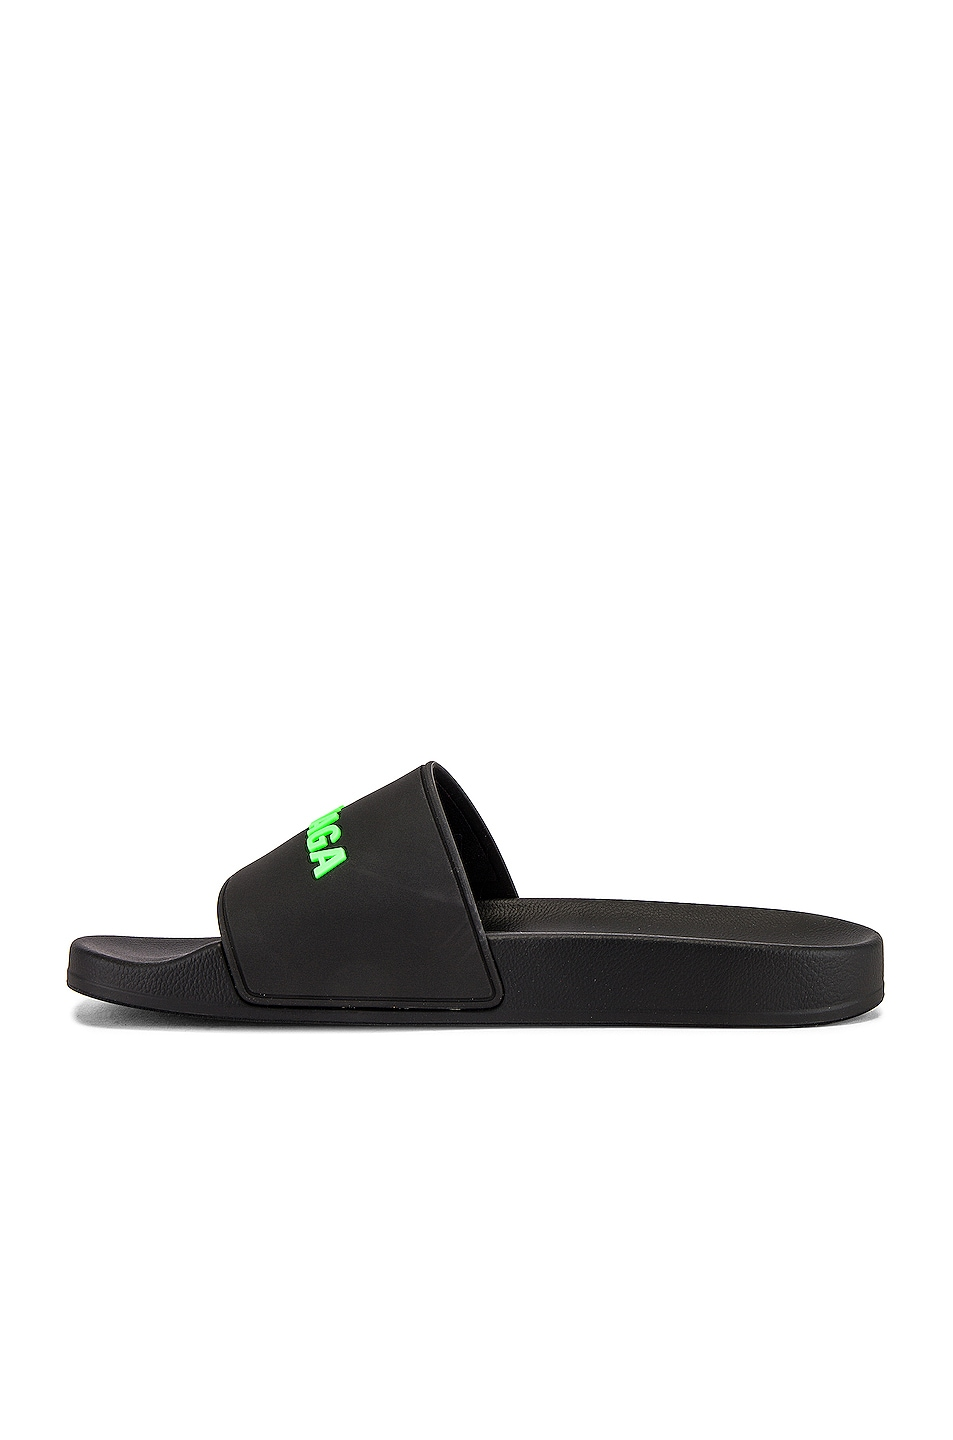 Image 5 of Balenciaga Rubber Logo Pool Slide in Black & Fluo Green